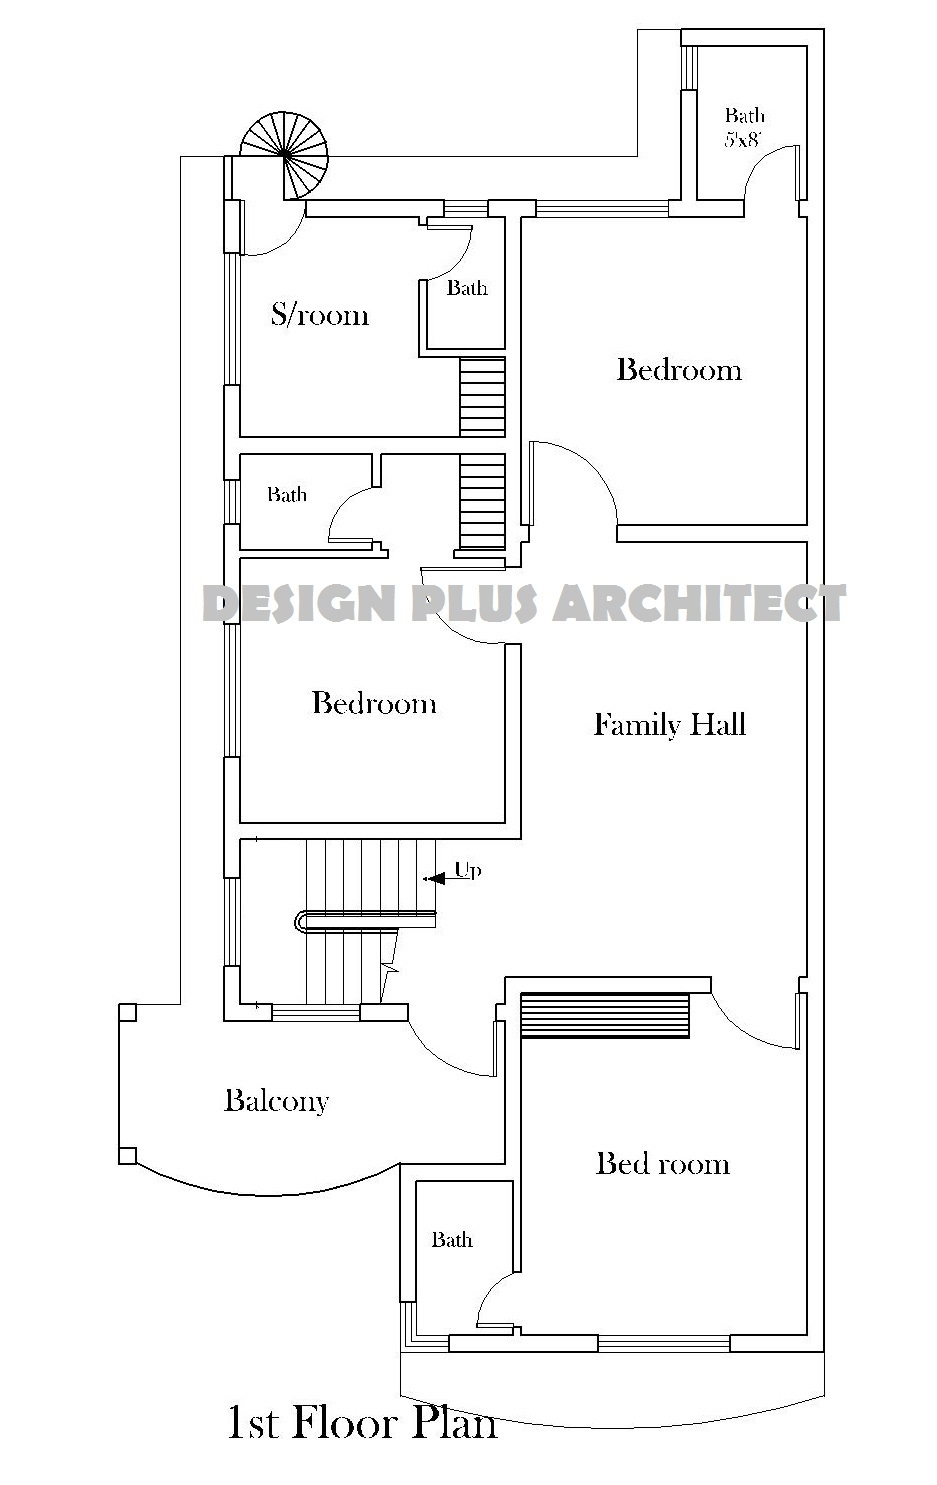 Home plans in pakistan home decor architect designer House blueprint maker